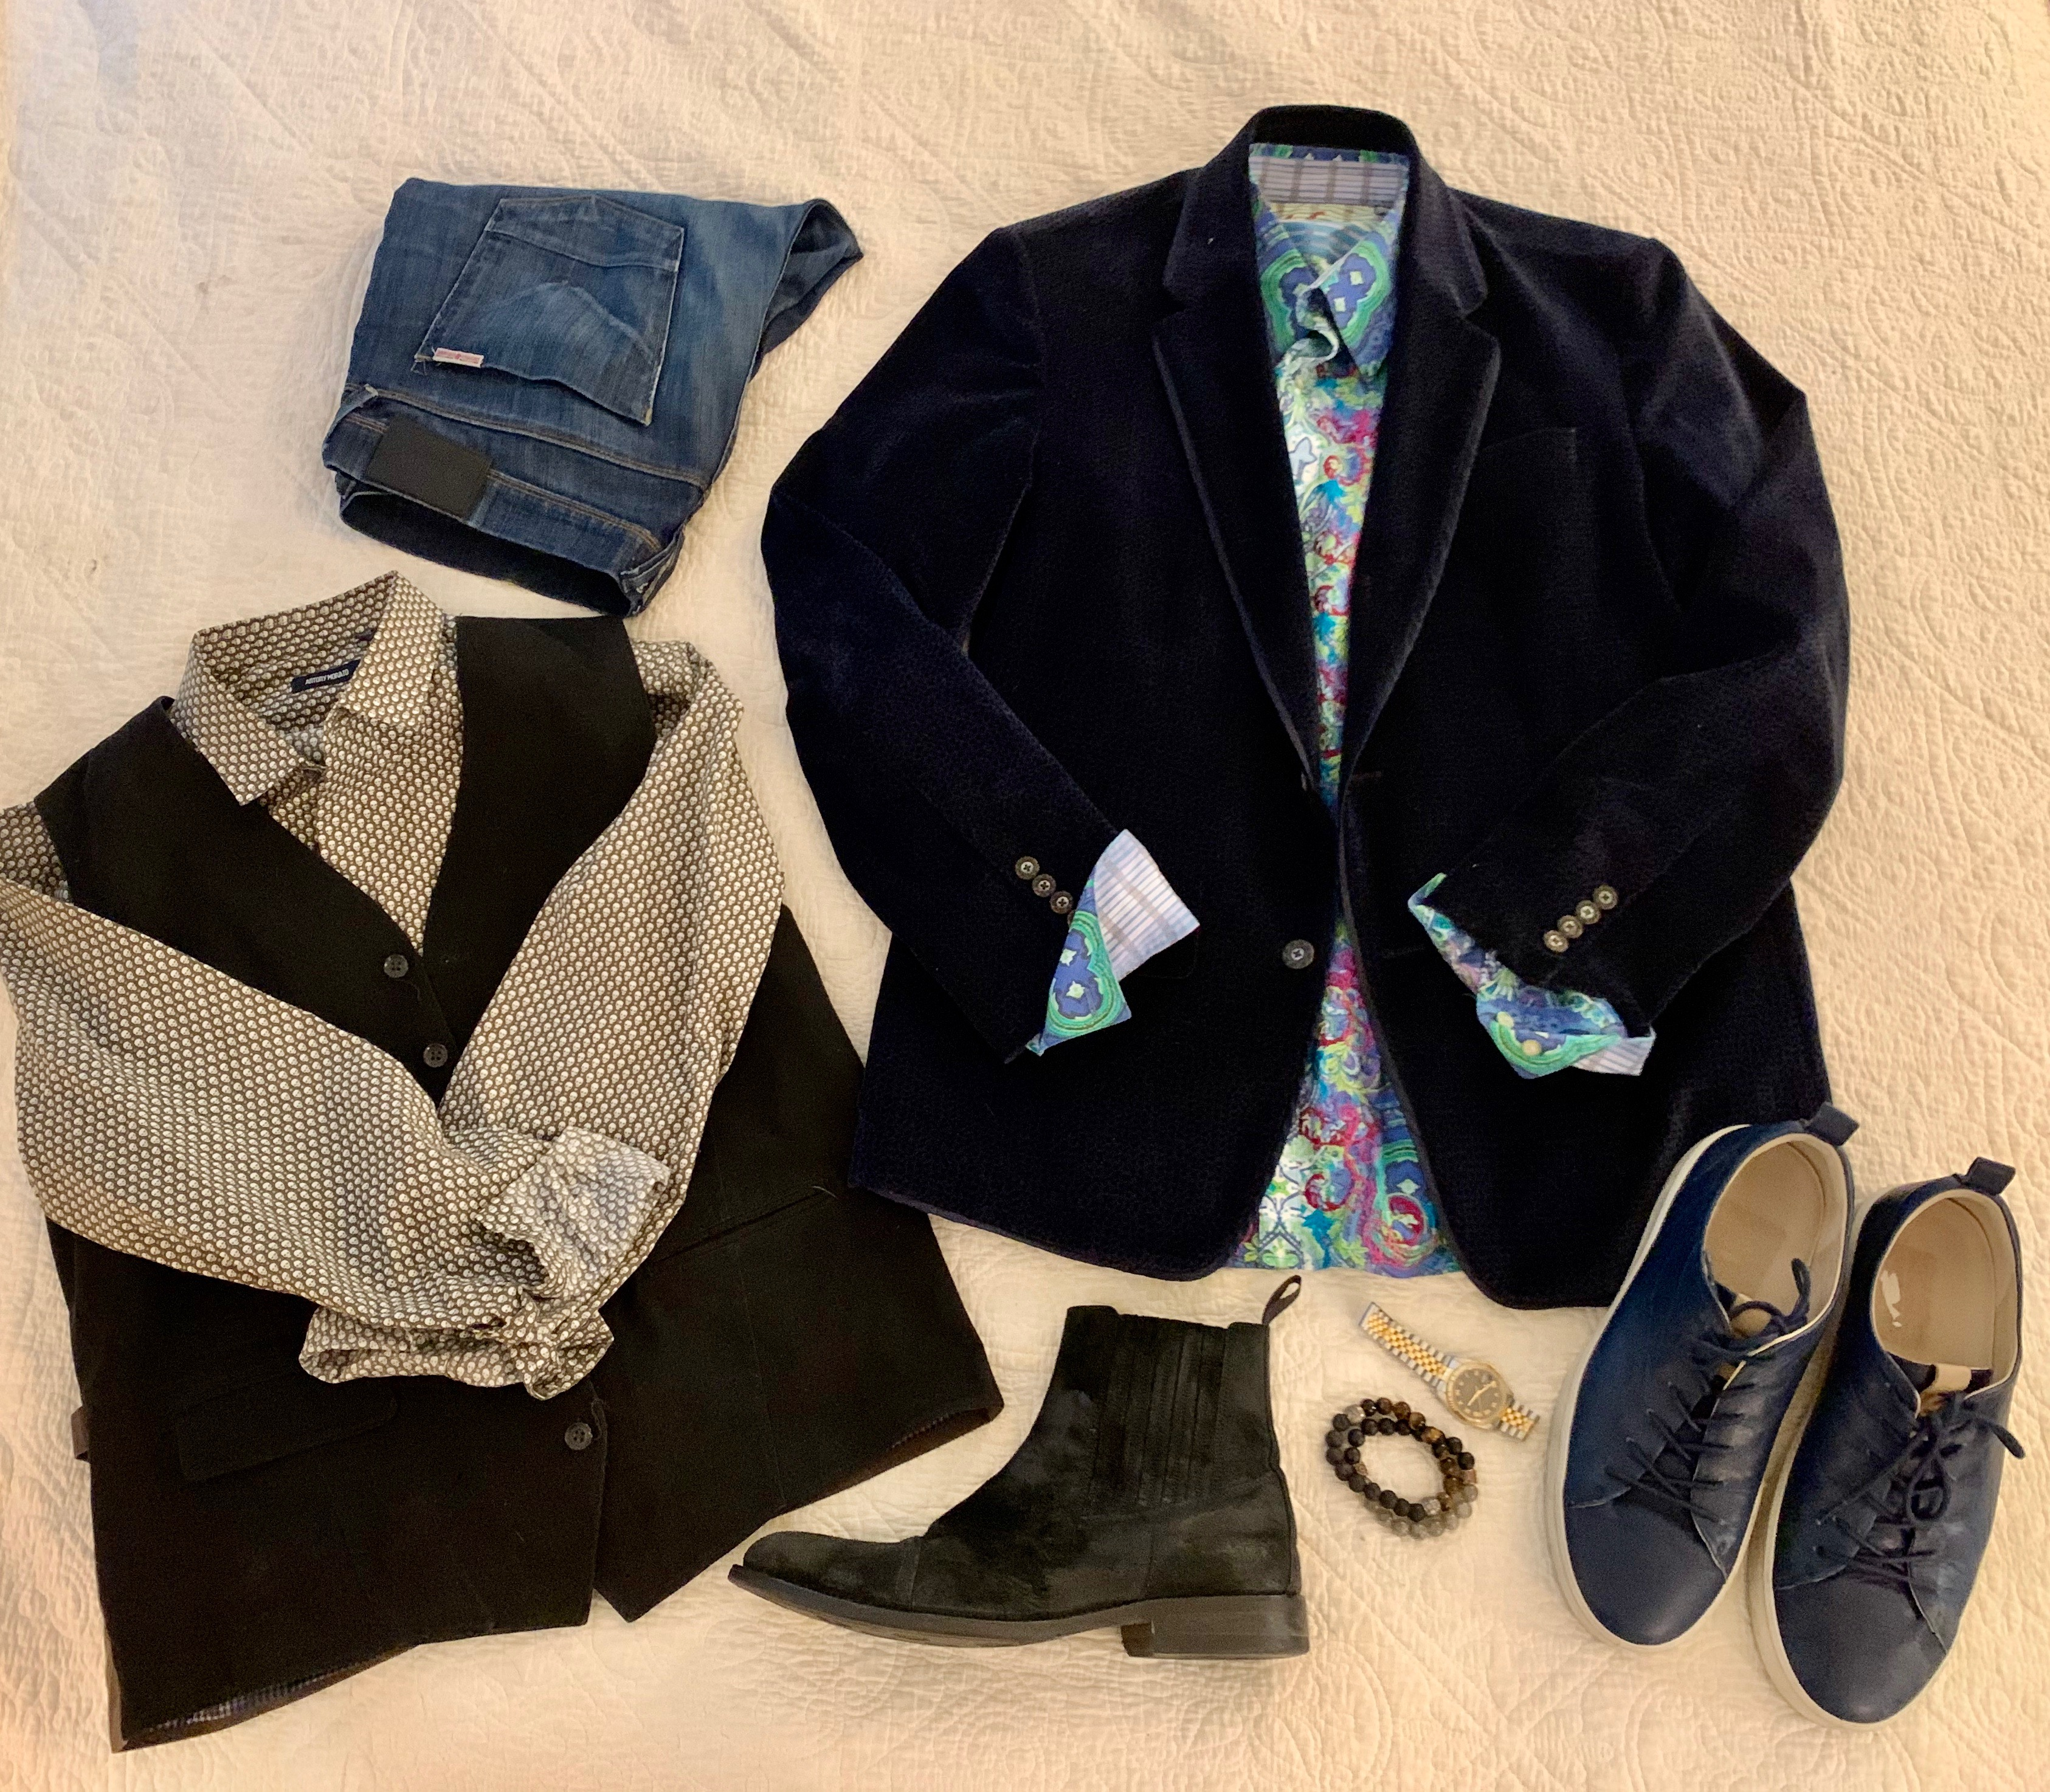 Travel Capsule Wardrobe for the GUYS